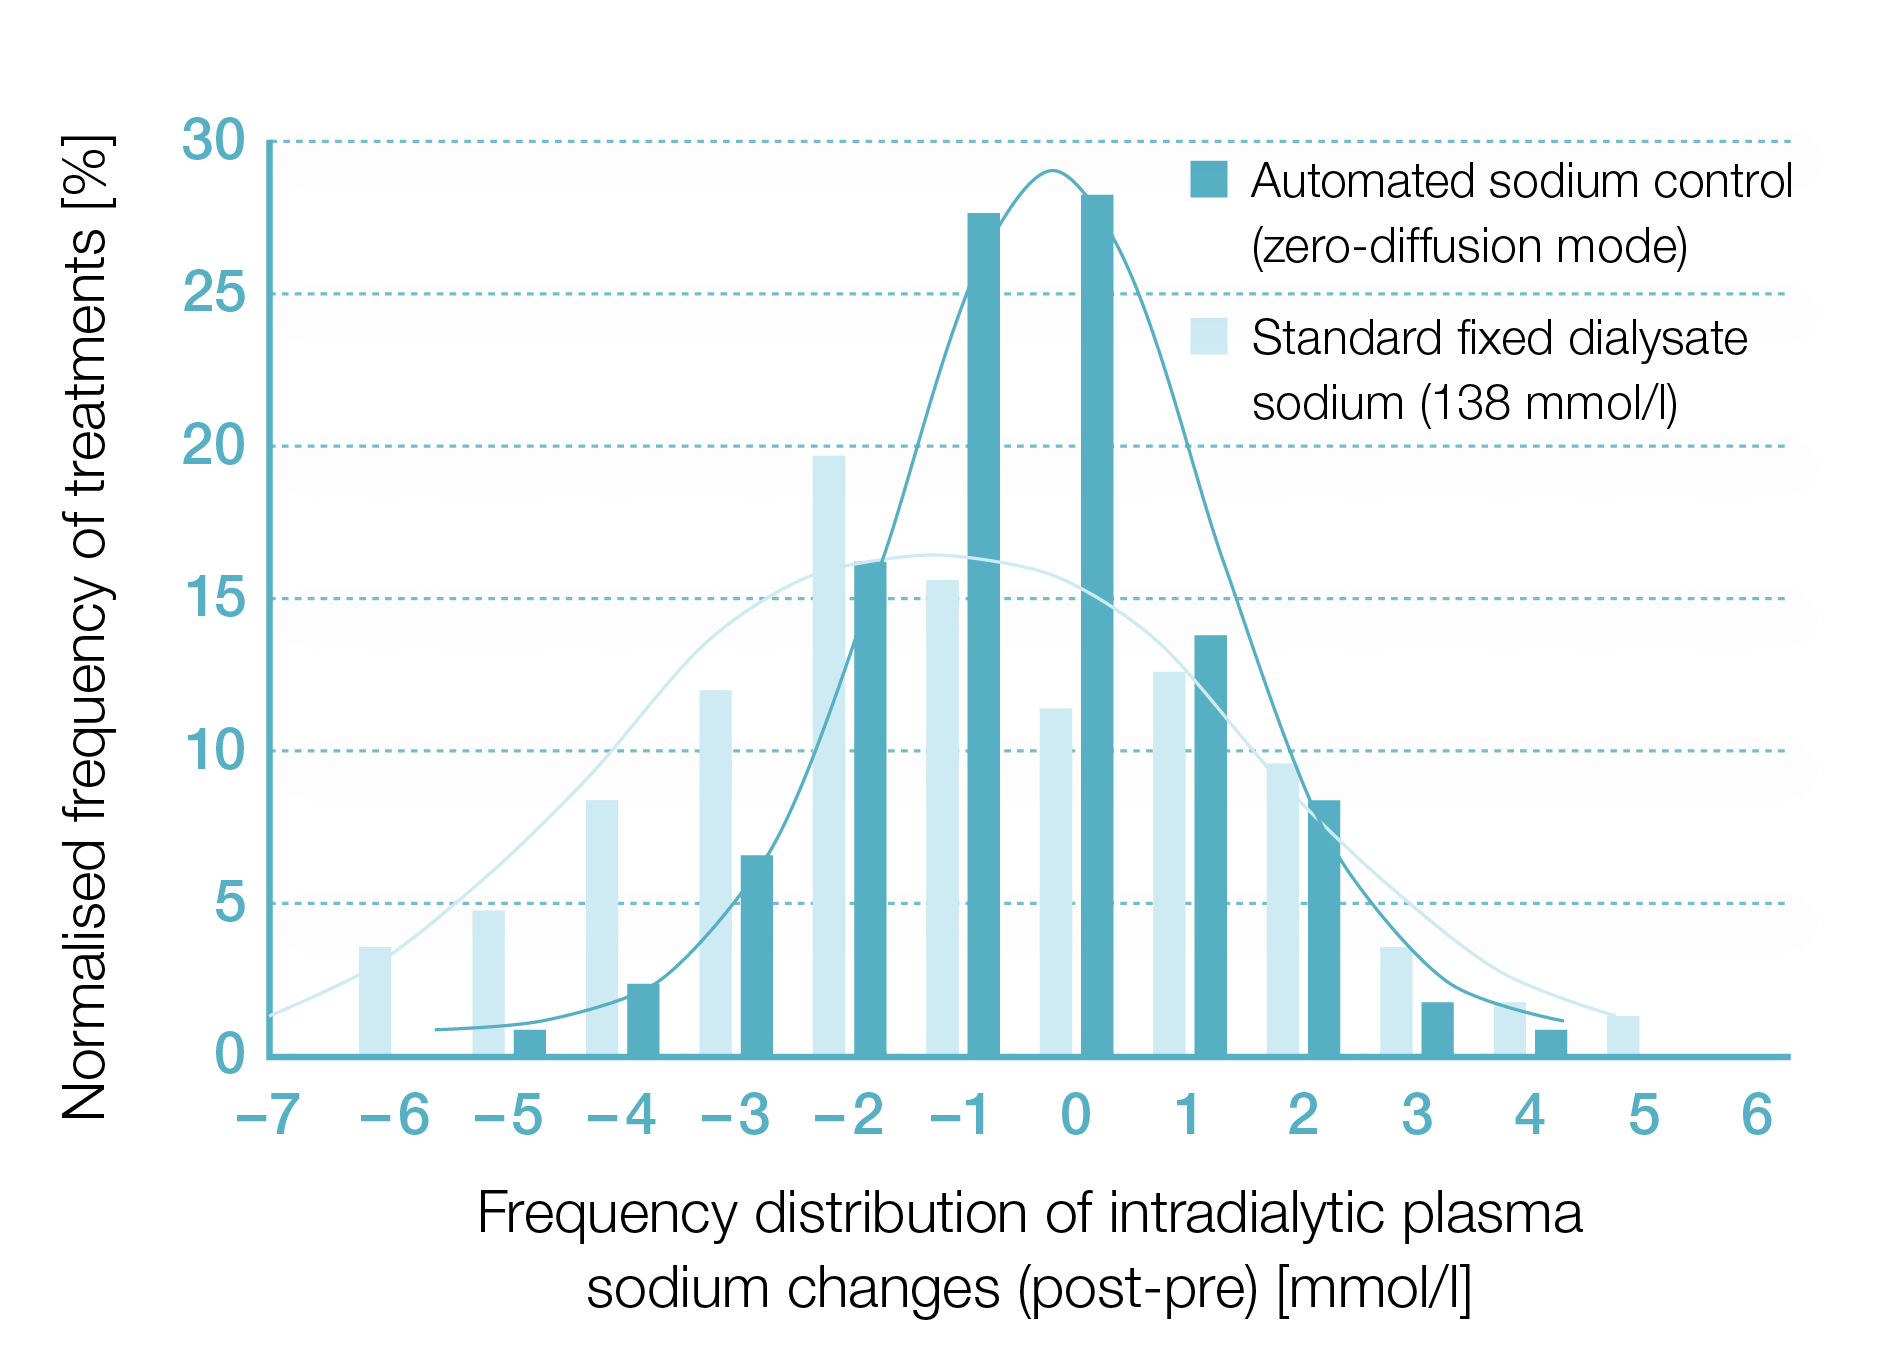 [Translate to German:] Distribution of plasma sodium changes